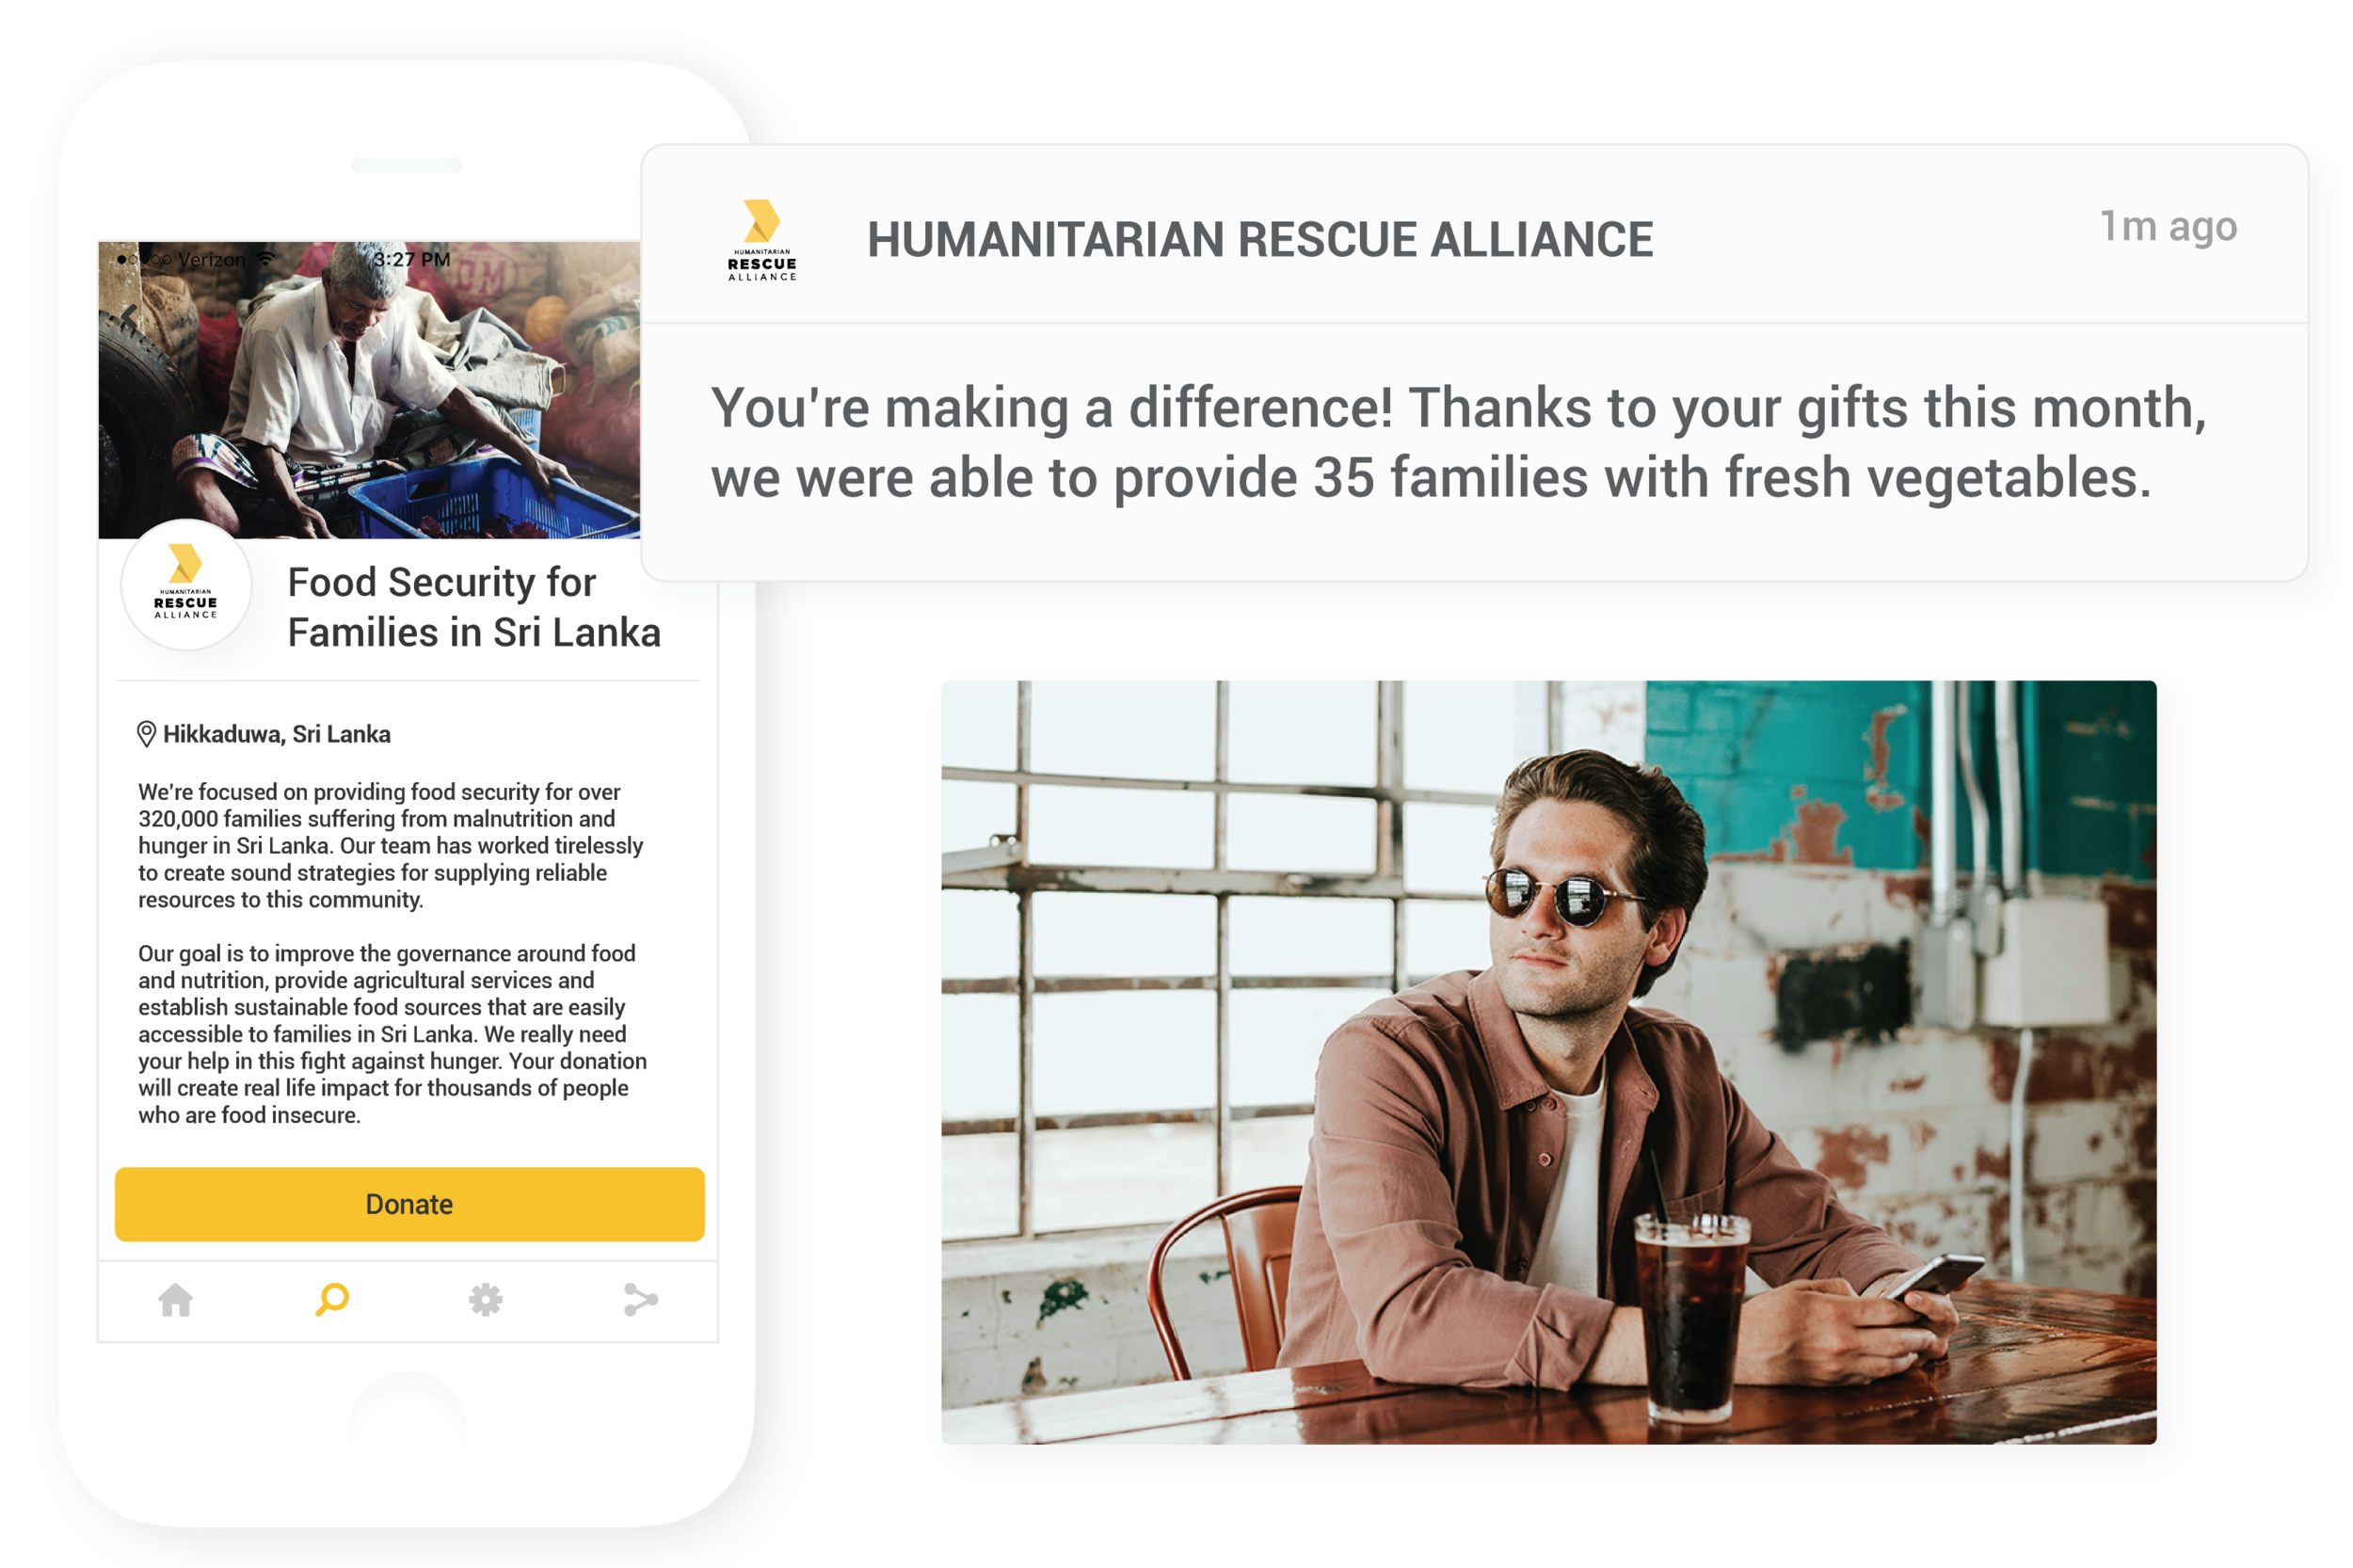 Deepen Your Donor Relationships - Cultivate your relationship with donors by sending mobile push notifications instantly or on a scheduled date. Demonstrate transparency by delivering updates when donors' contributions make an impact.